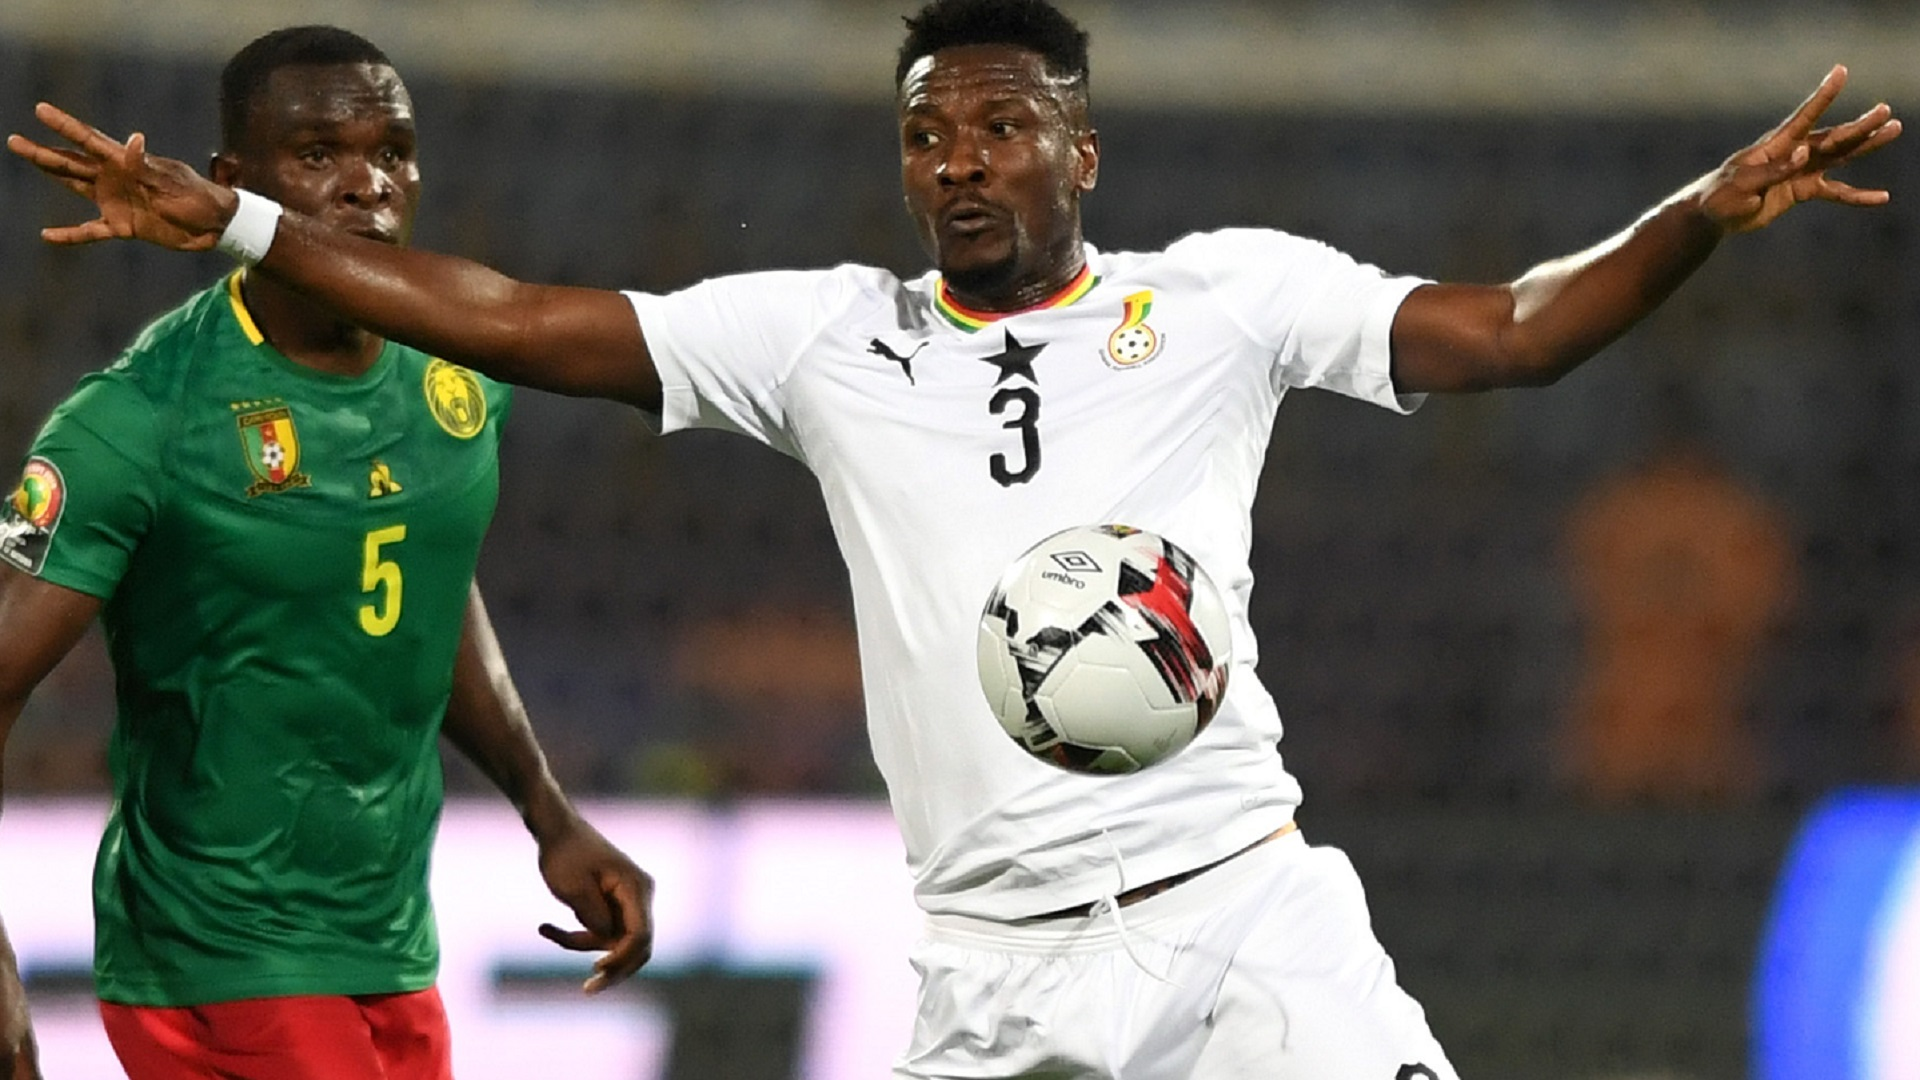 Ghana's forward Asamoah Gyan controls the ball during the 2019 Africa Cup of Nations